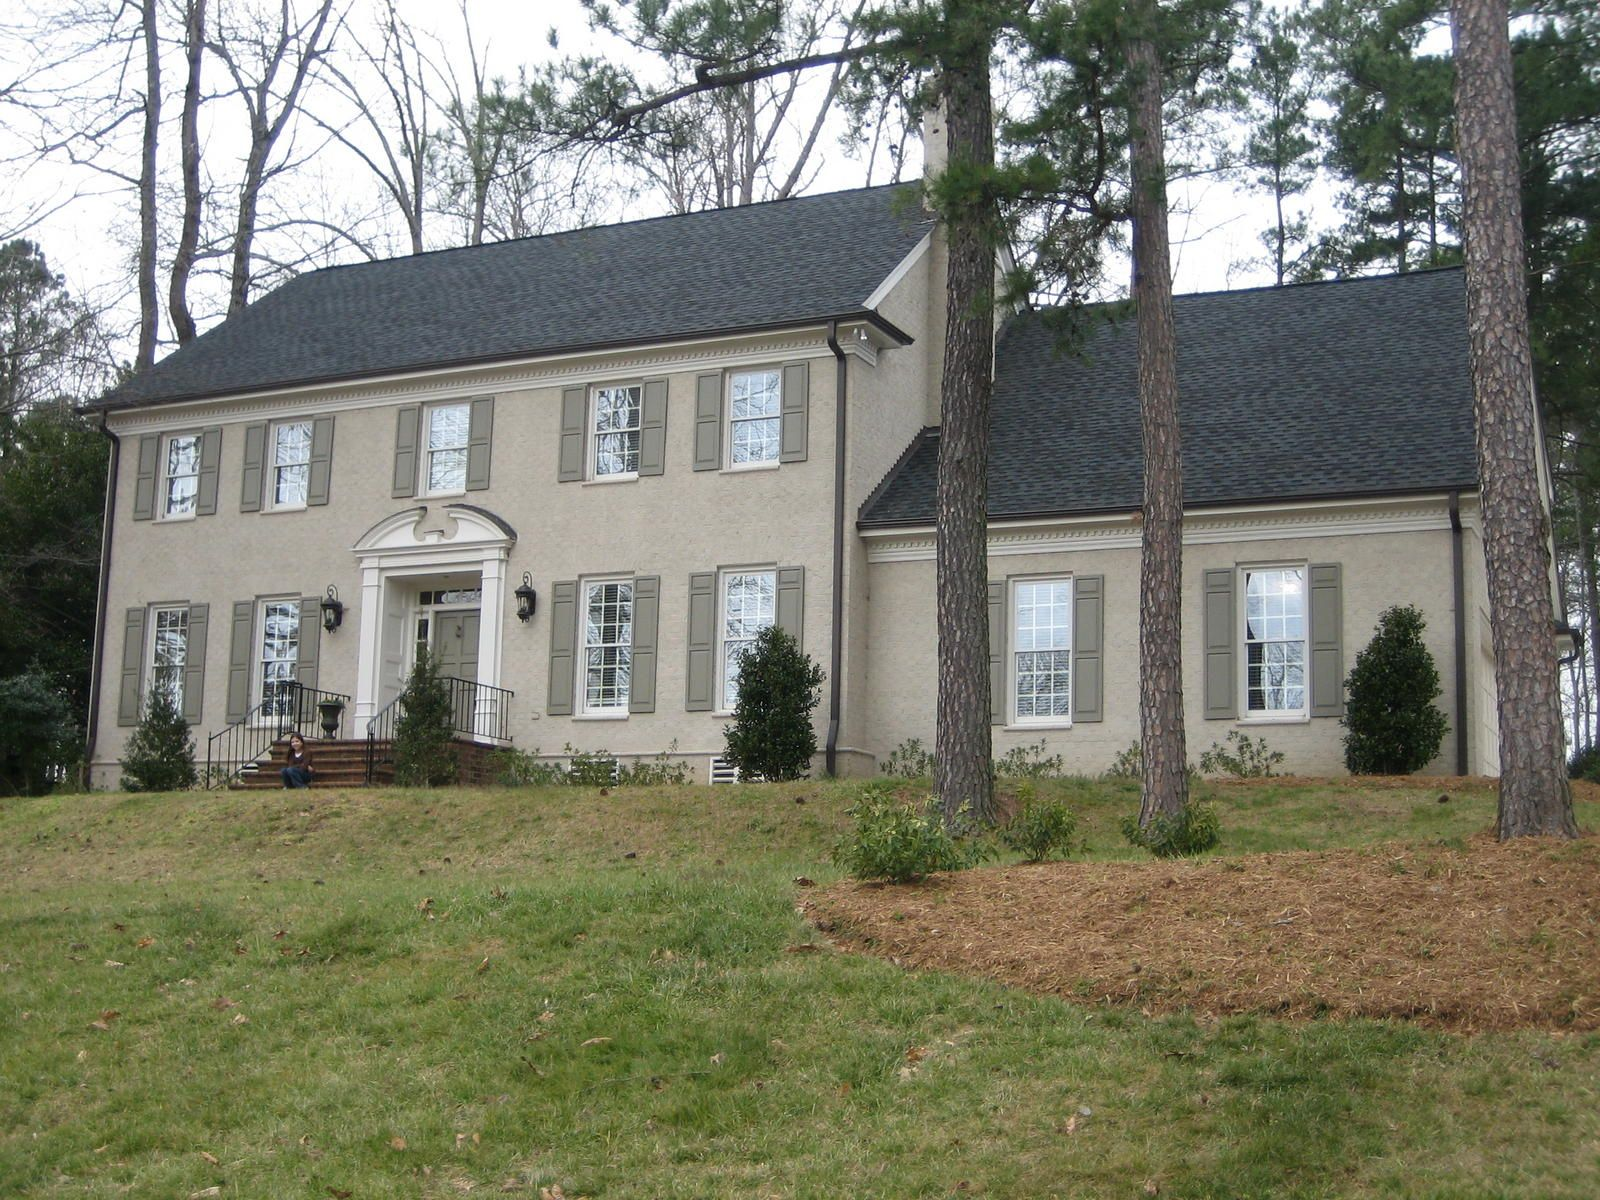 Painted brick houses colonial revival federal style with stucco or painted brick siding for Federal style home exterior paint colors